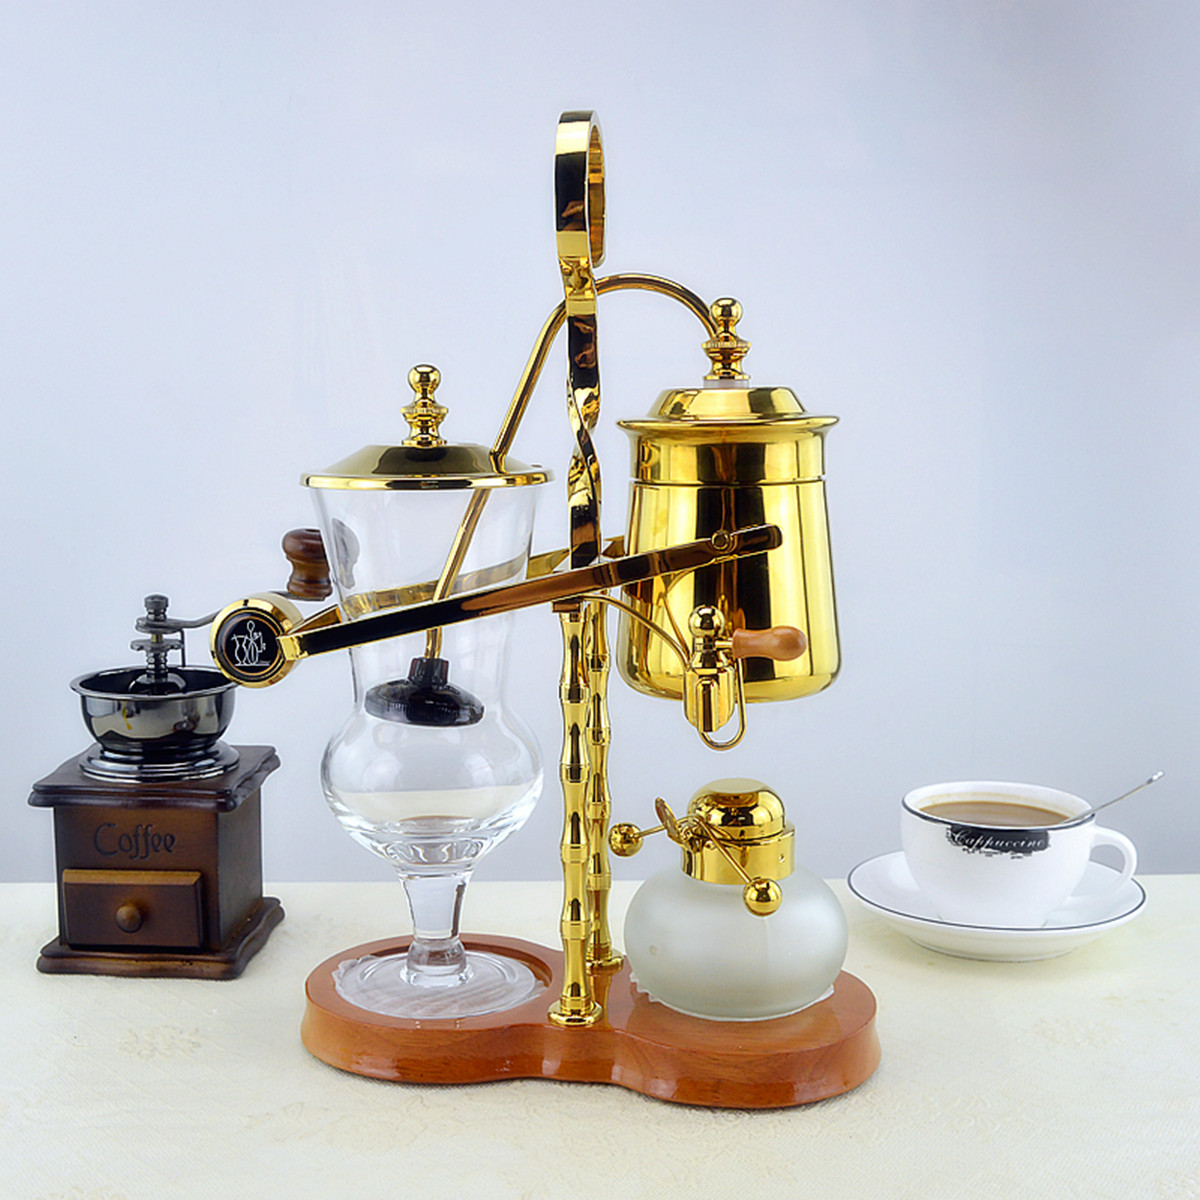 Siphon Coffee Maker Nz : Gold Belgian Luxury Royal Family Siphon Coffee/Tea Pot Maker eBay